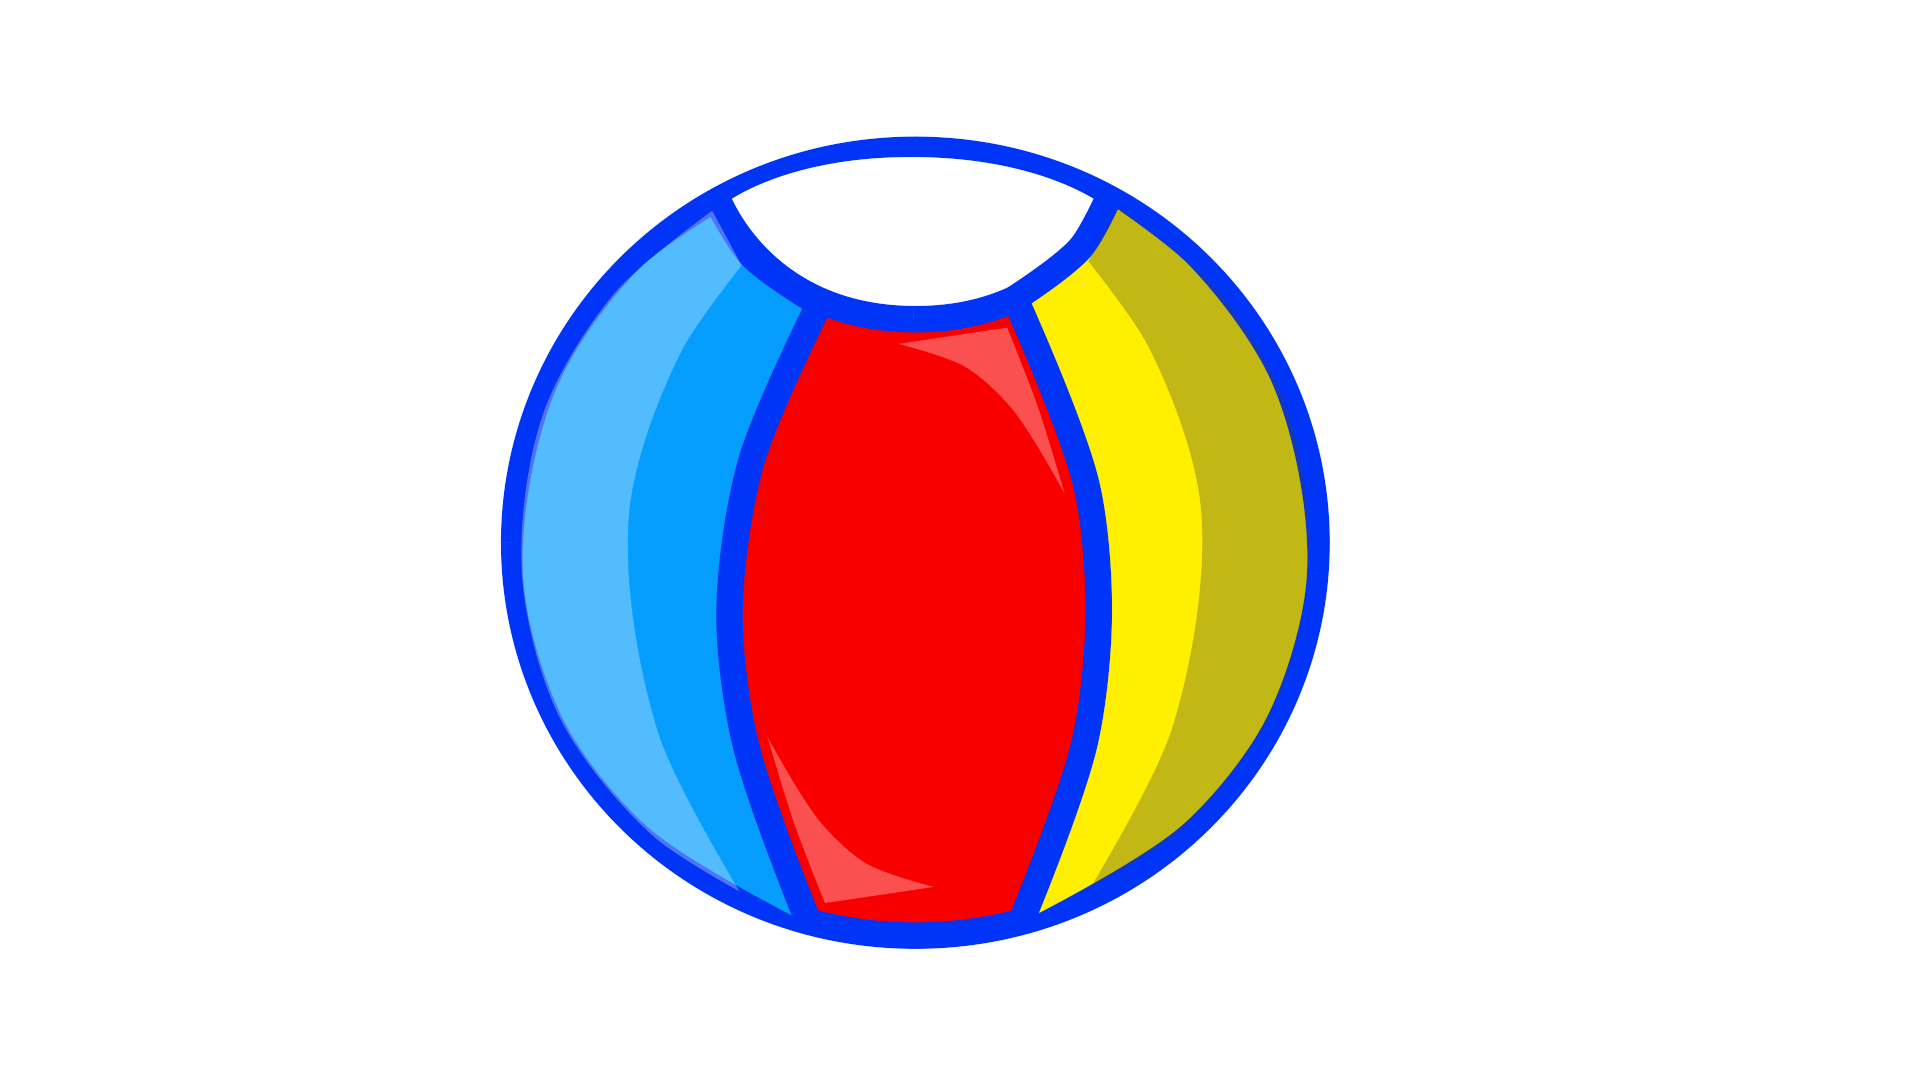 Beachball clipart circle object. Image beach ball new